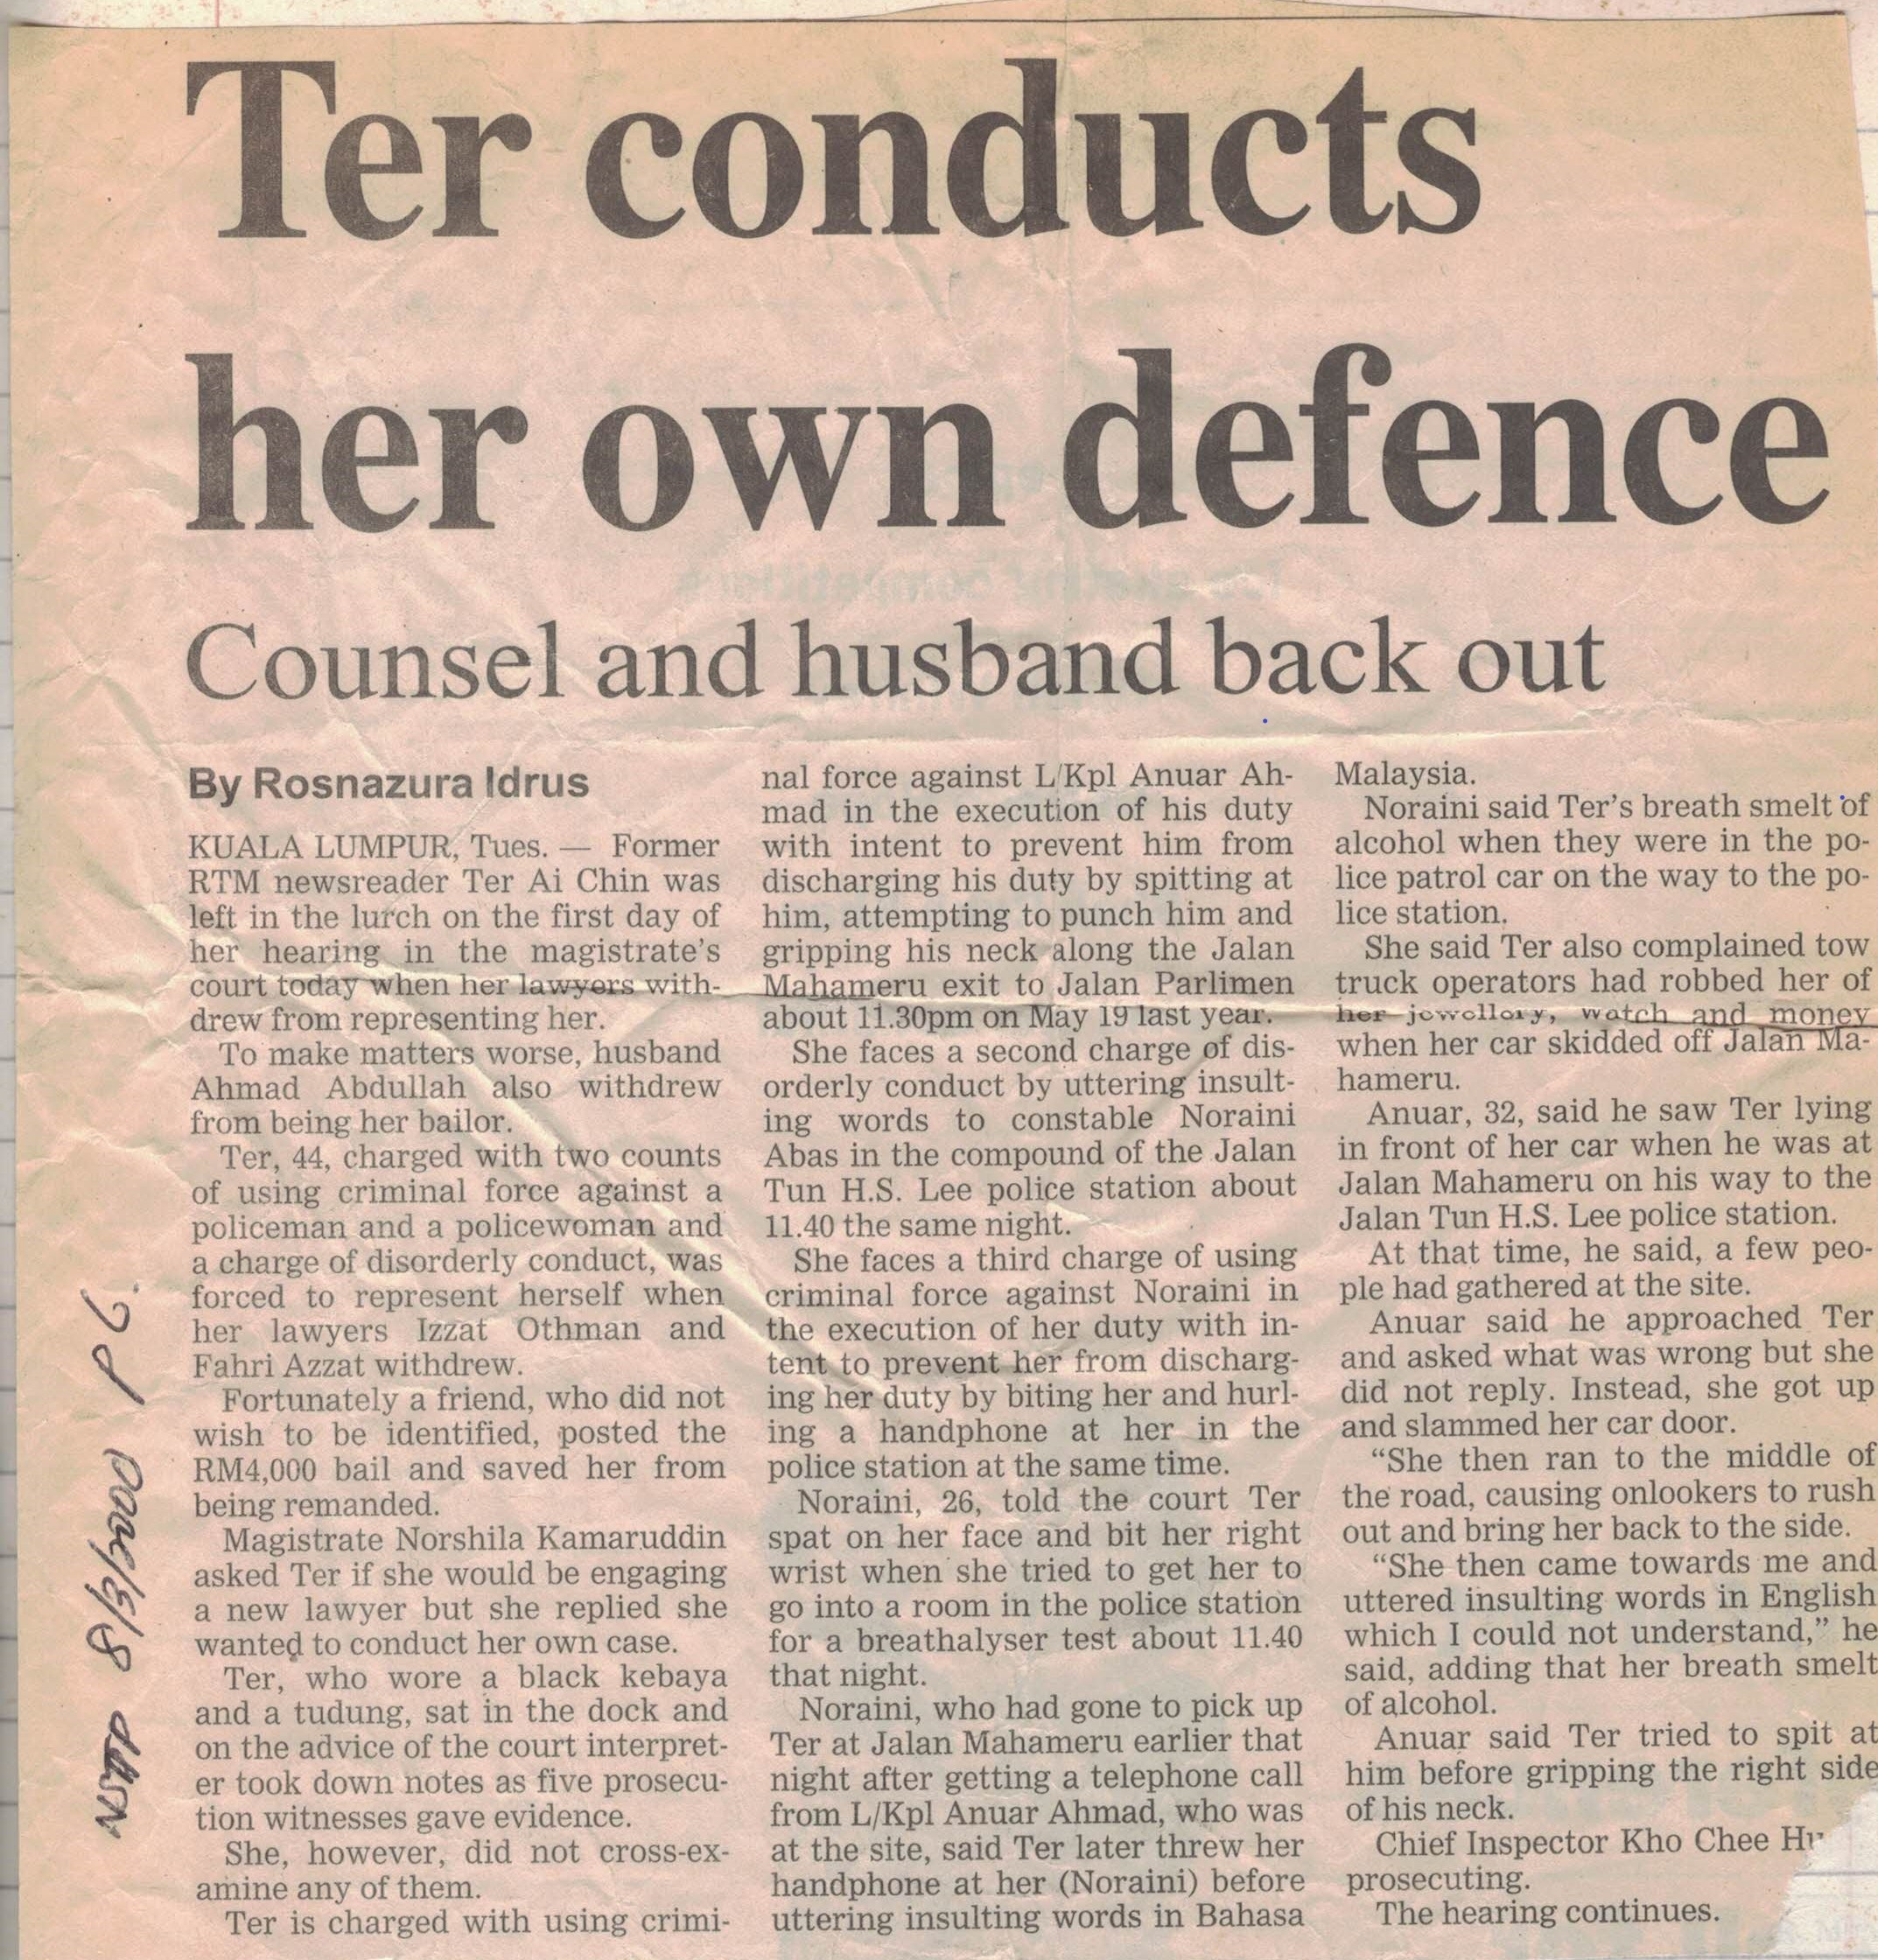 'Ter Conducts her own defence'